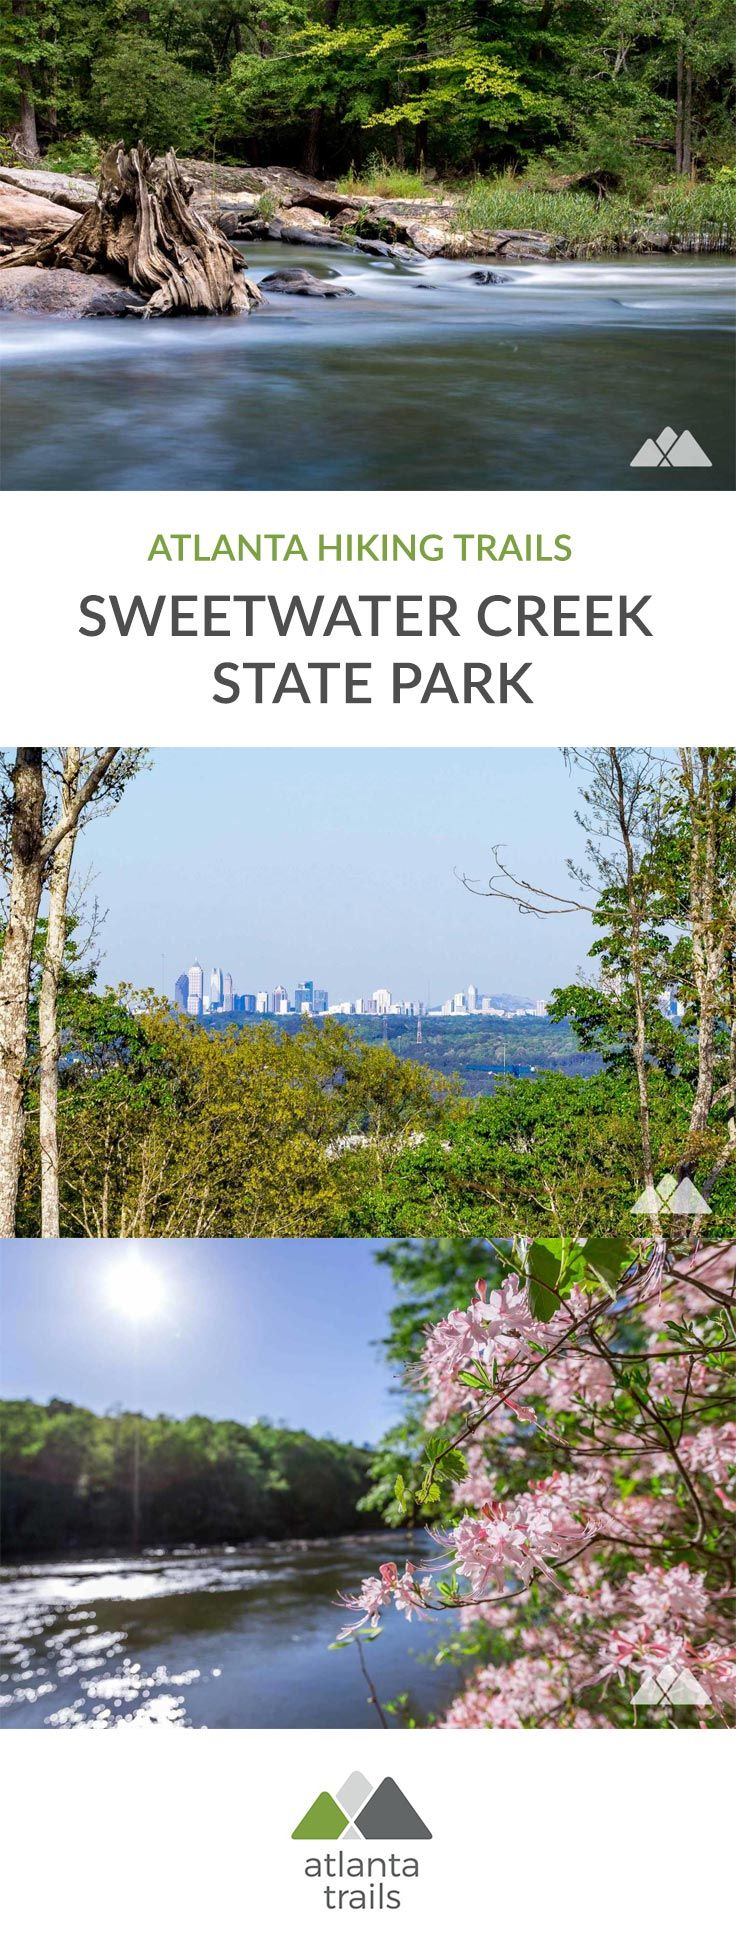 Hike Sweetwater Creek State Park's fantastic running and hiking trails near Atlanta, exploring a rushing, whitewater-filled creek, Civil War mill ruins and a beautiful, rolling forest. #hiking #running #atlanta #georgia #travel #outdoors #adventure